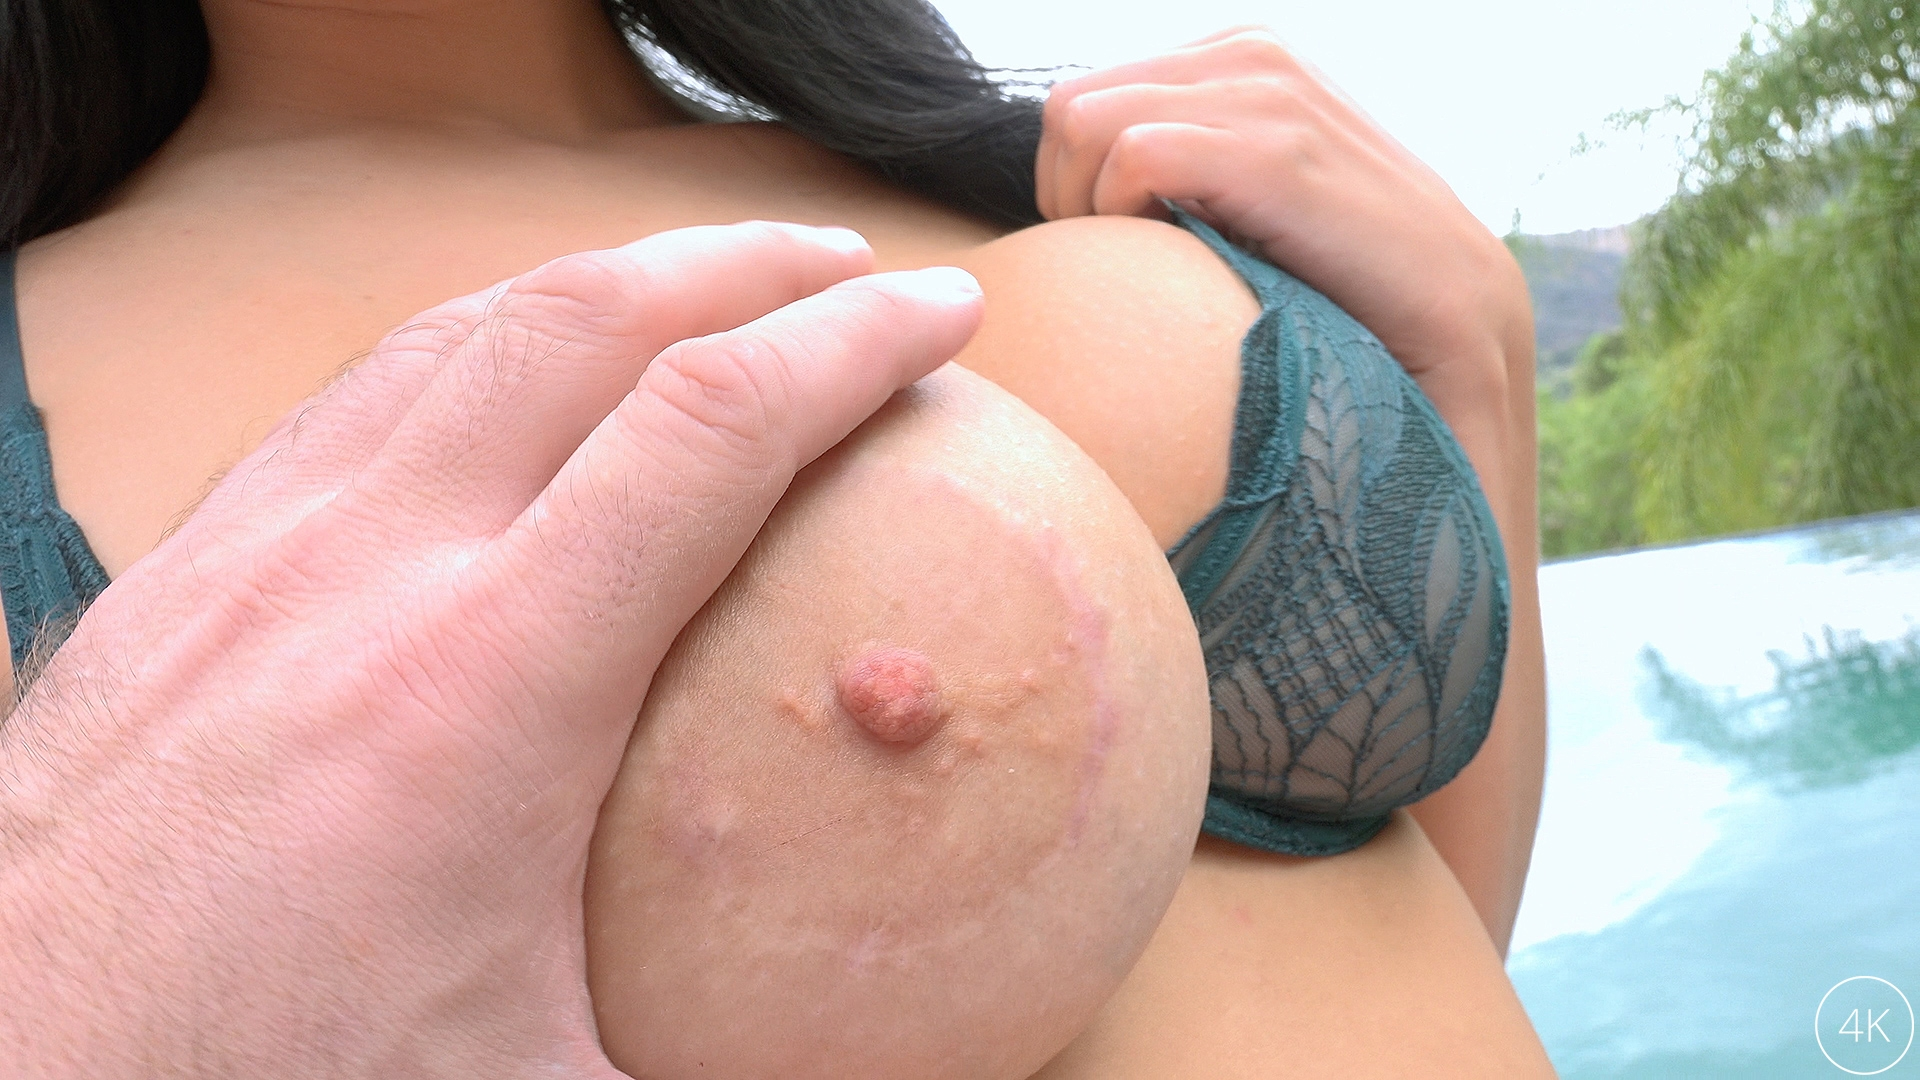 Victoria June Voluptuous Big Tit